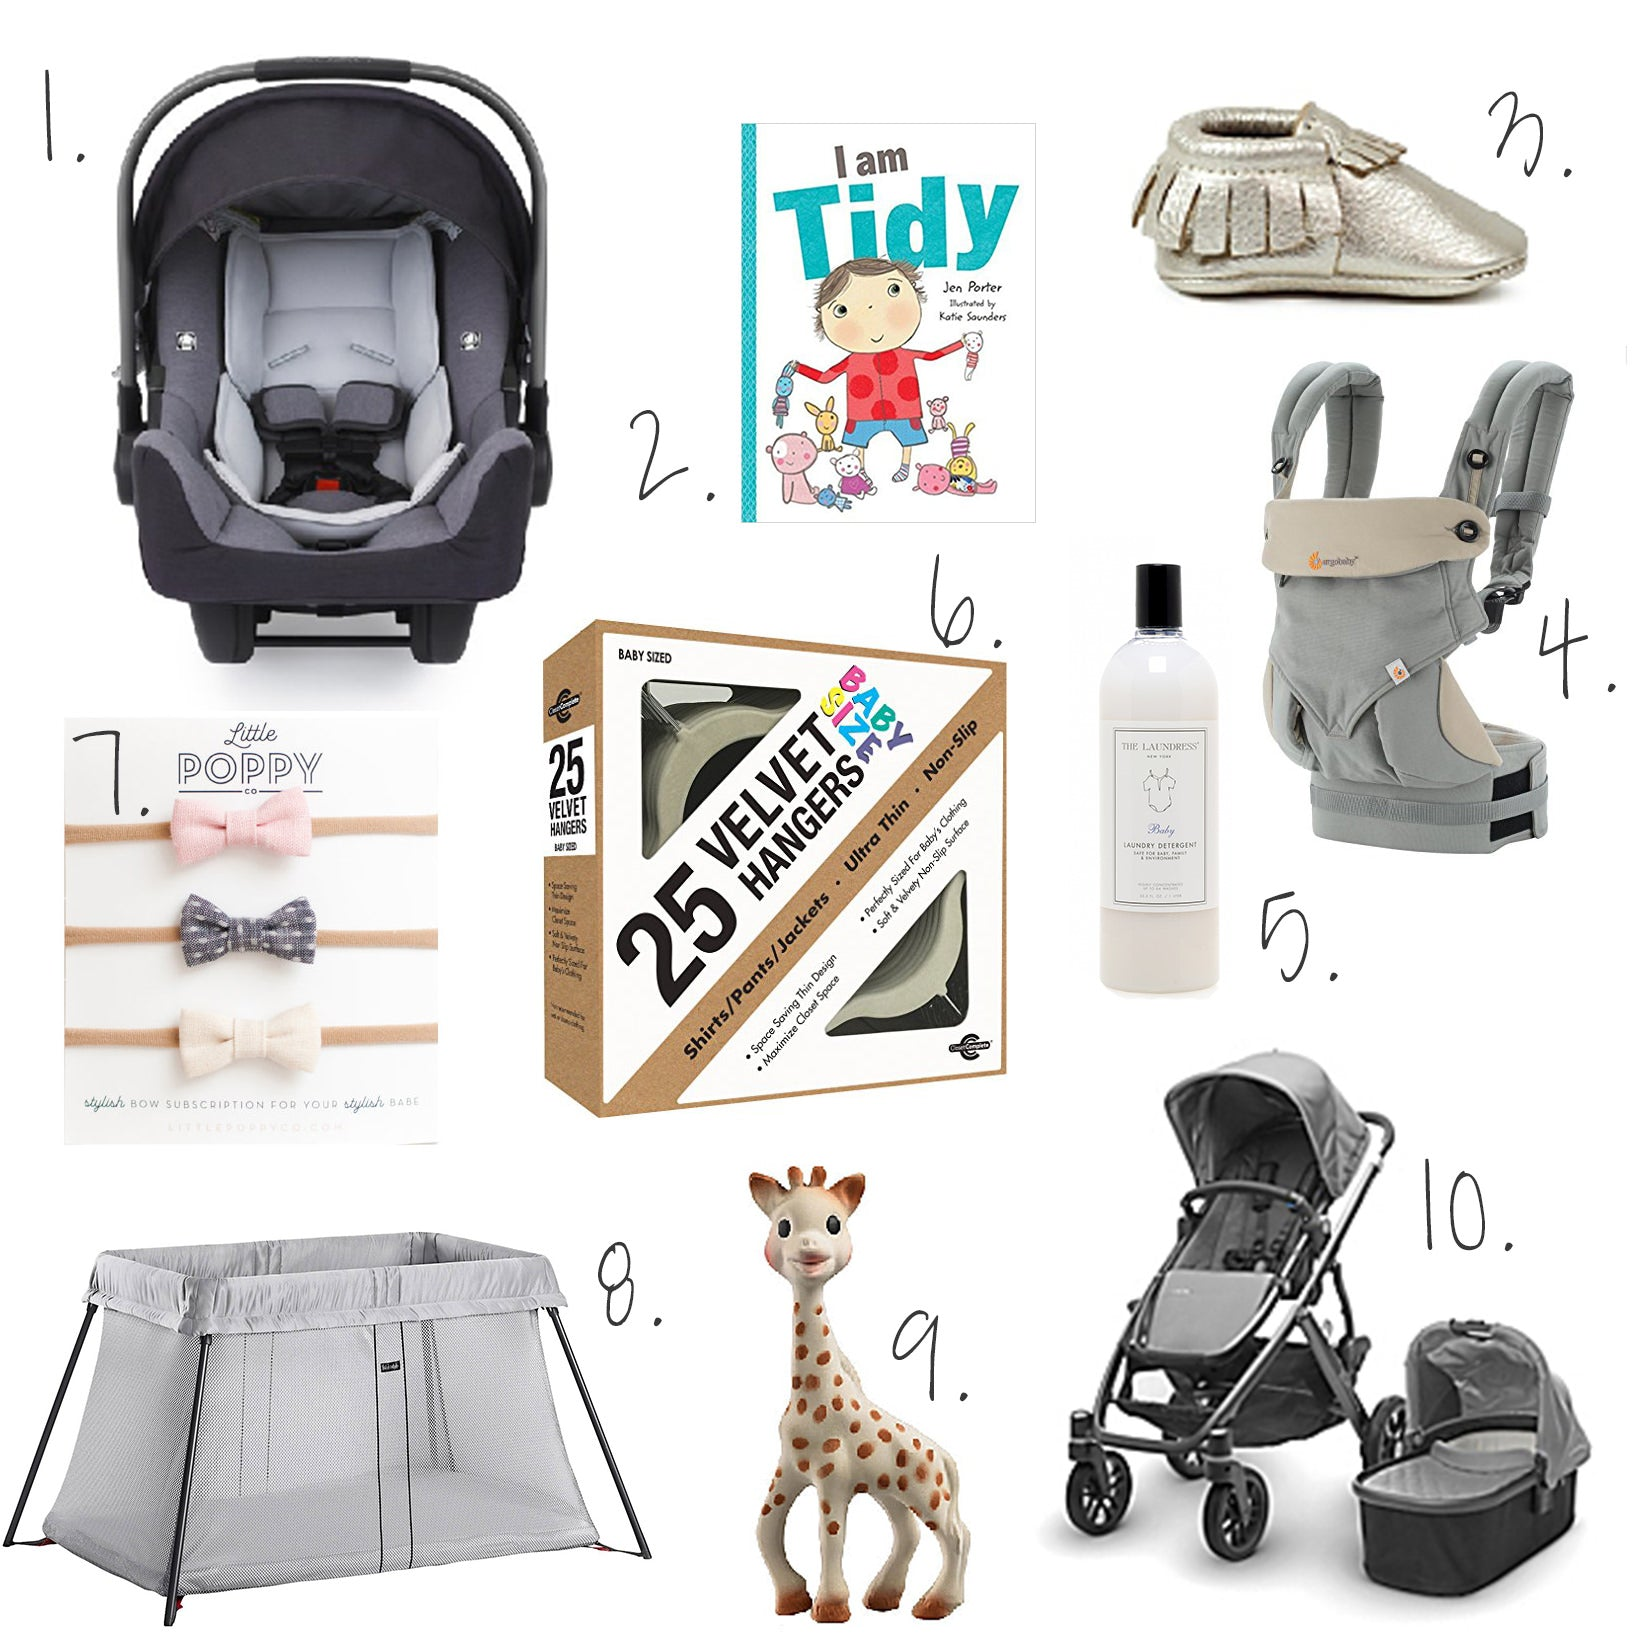 baby, registry, neat method, marissa hagmeyer, nuna pipa, uppababy, baby bjorn, ergobaby, freshly picked, the laundress